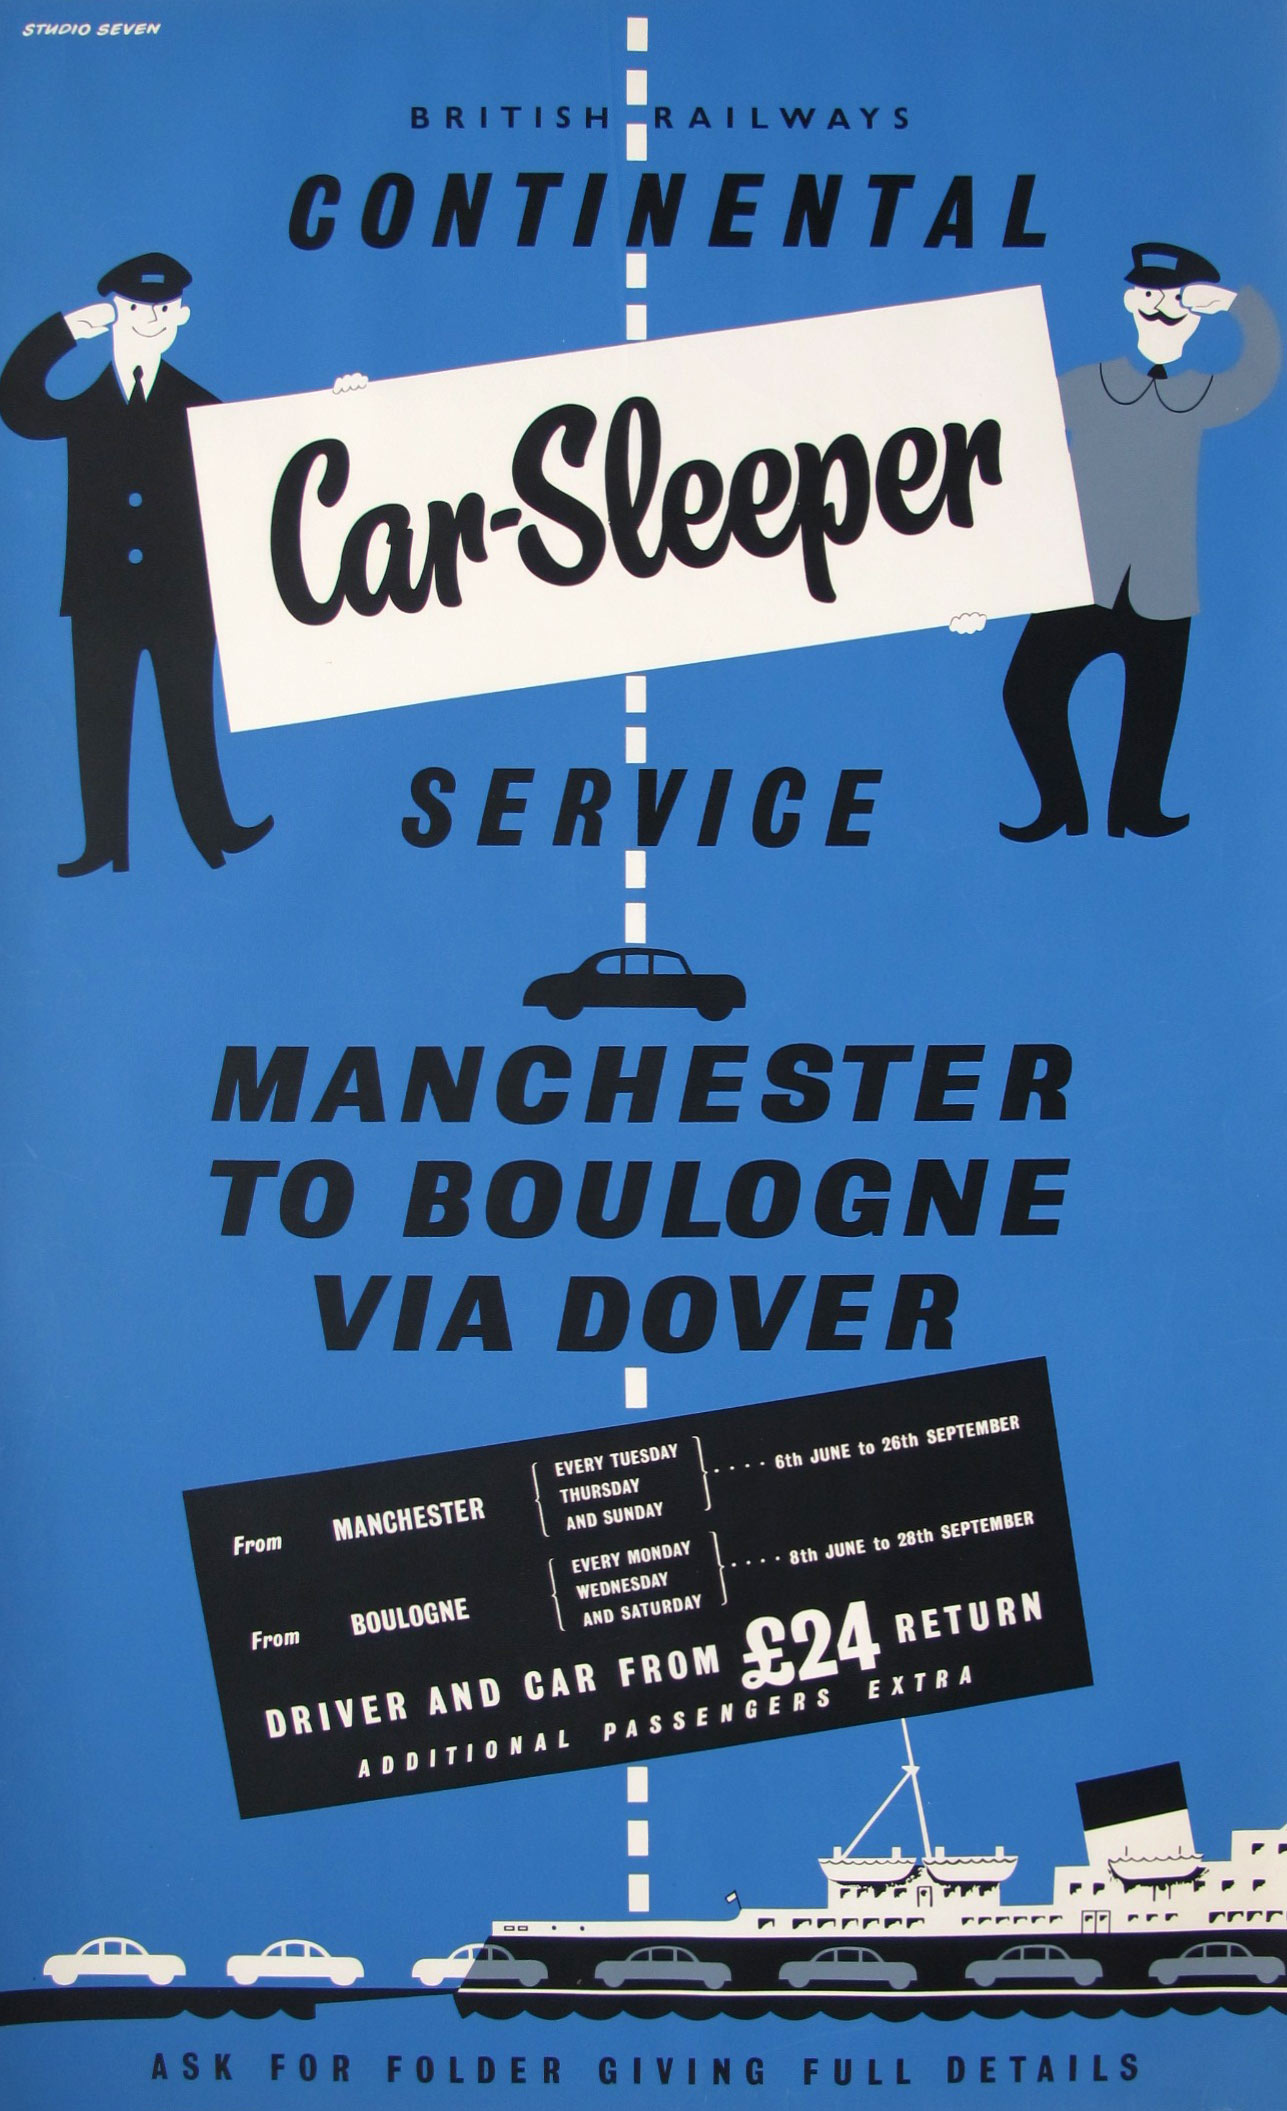 Posters for car sleeper expresses around 1960 | retours